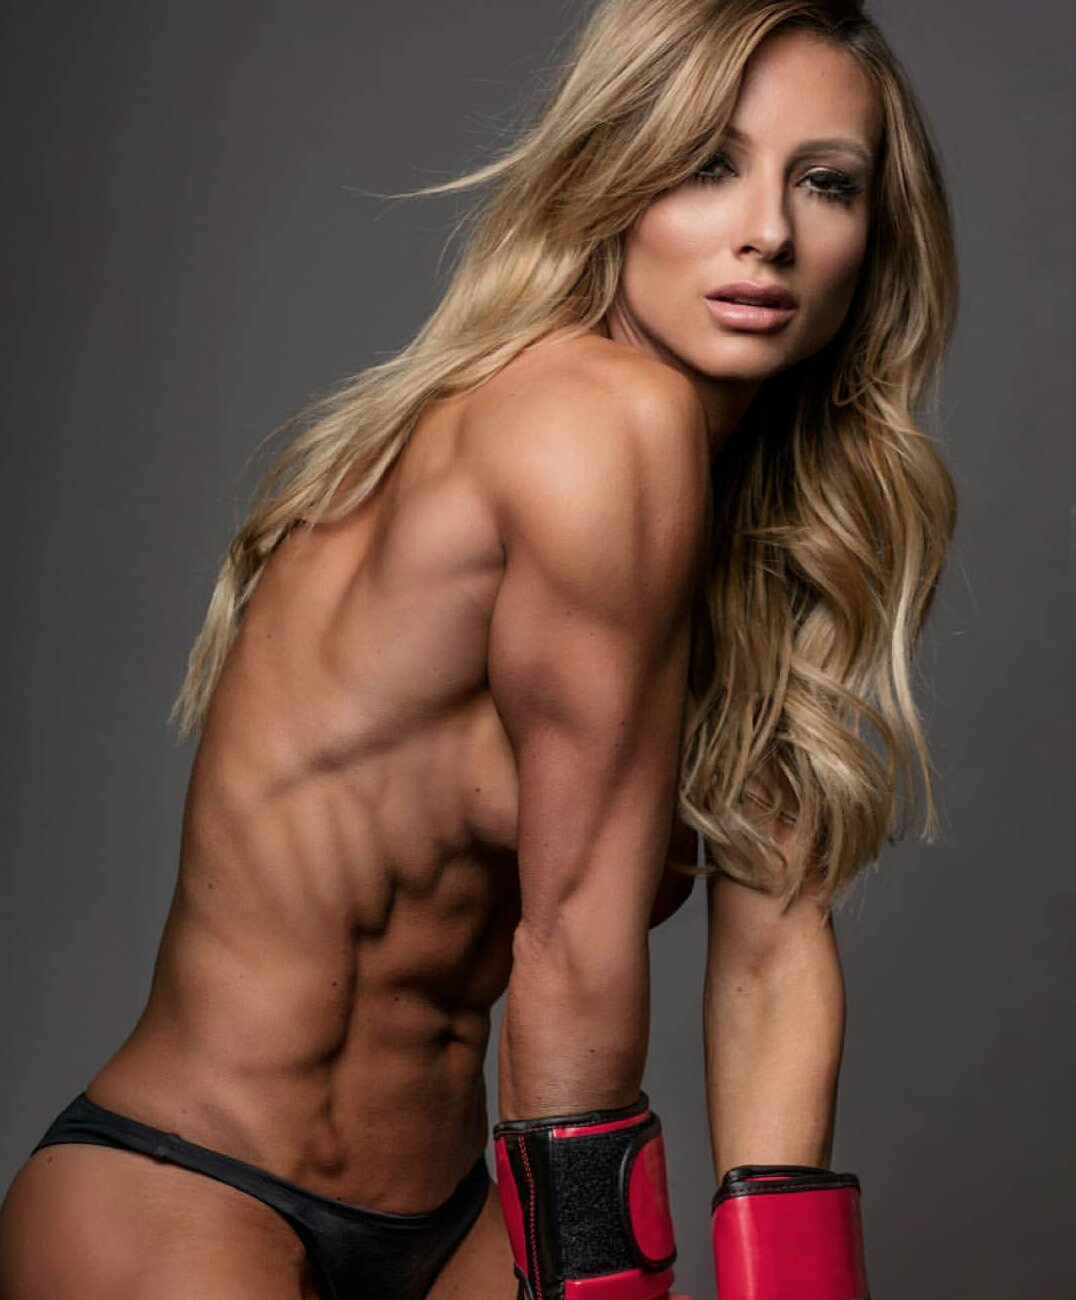 best female abs nude